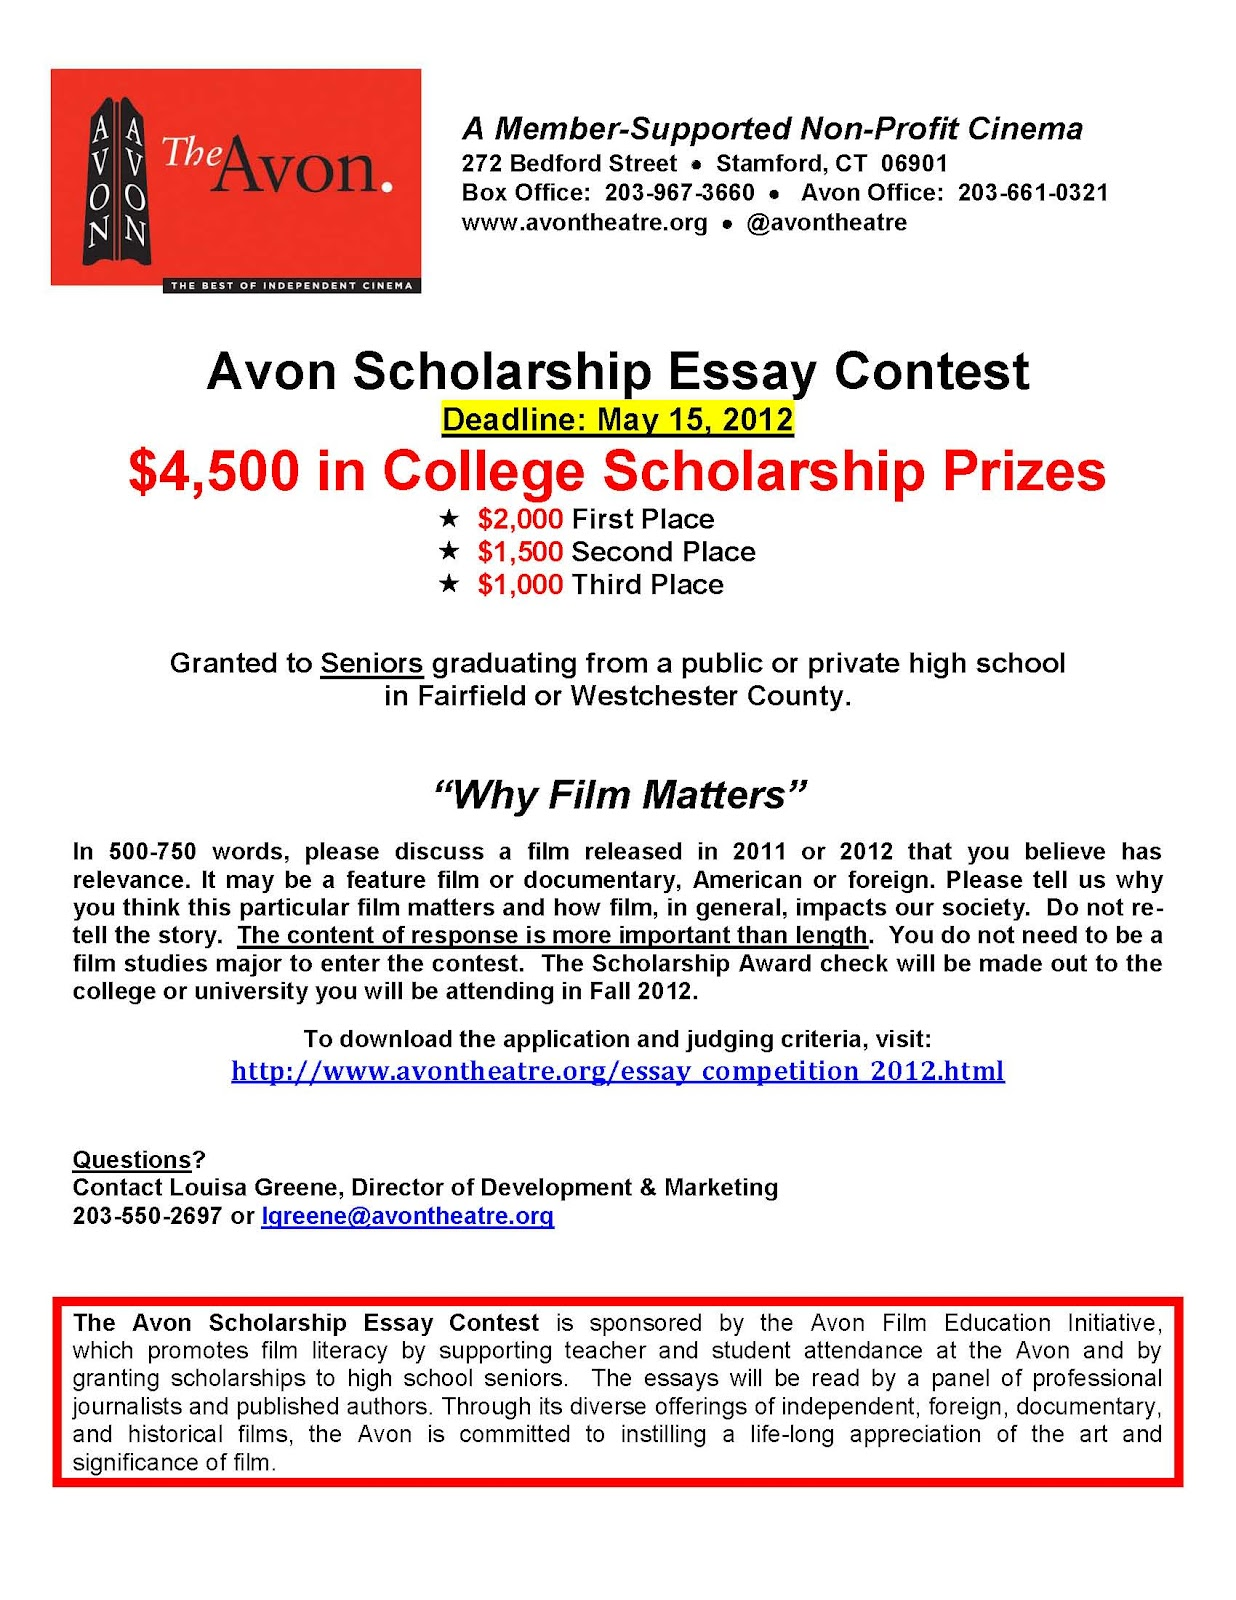 003 No Essay College Scholarship Prowler Free Scholarships For High School Seniors Avonscholarshipessaycontest2012 In Texas California Class Of Short Unbelievable With Without Requirements Essays Required Full